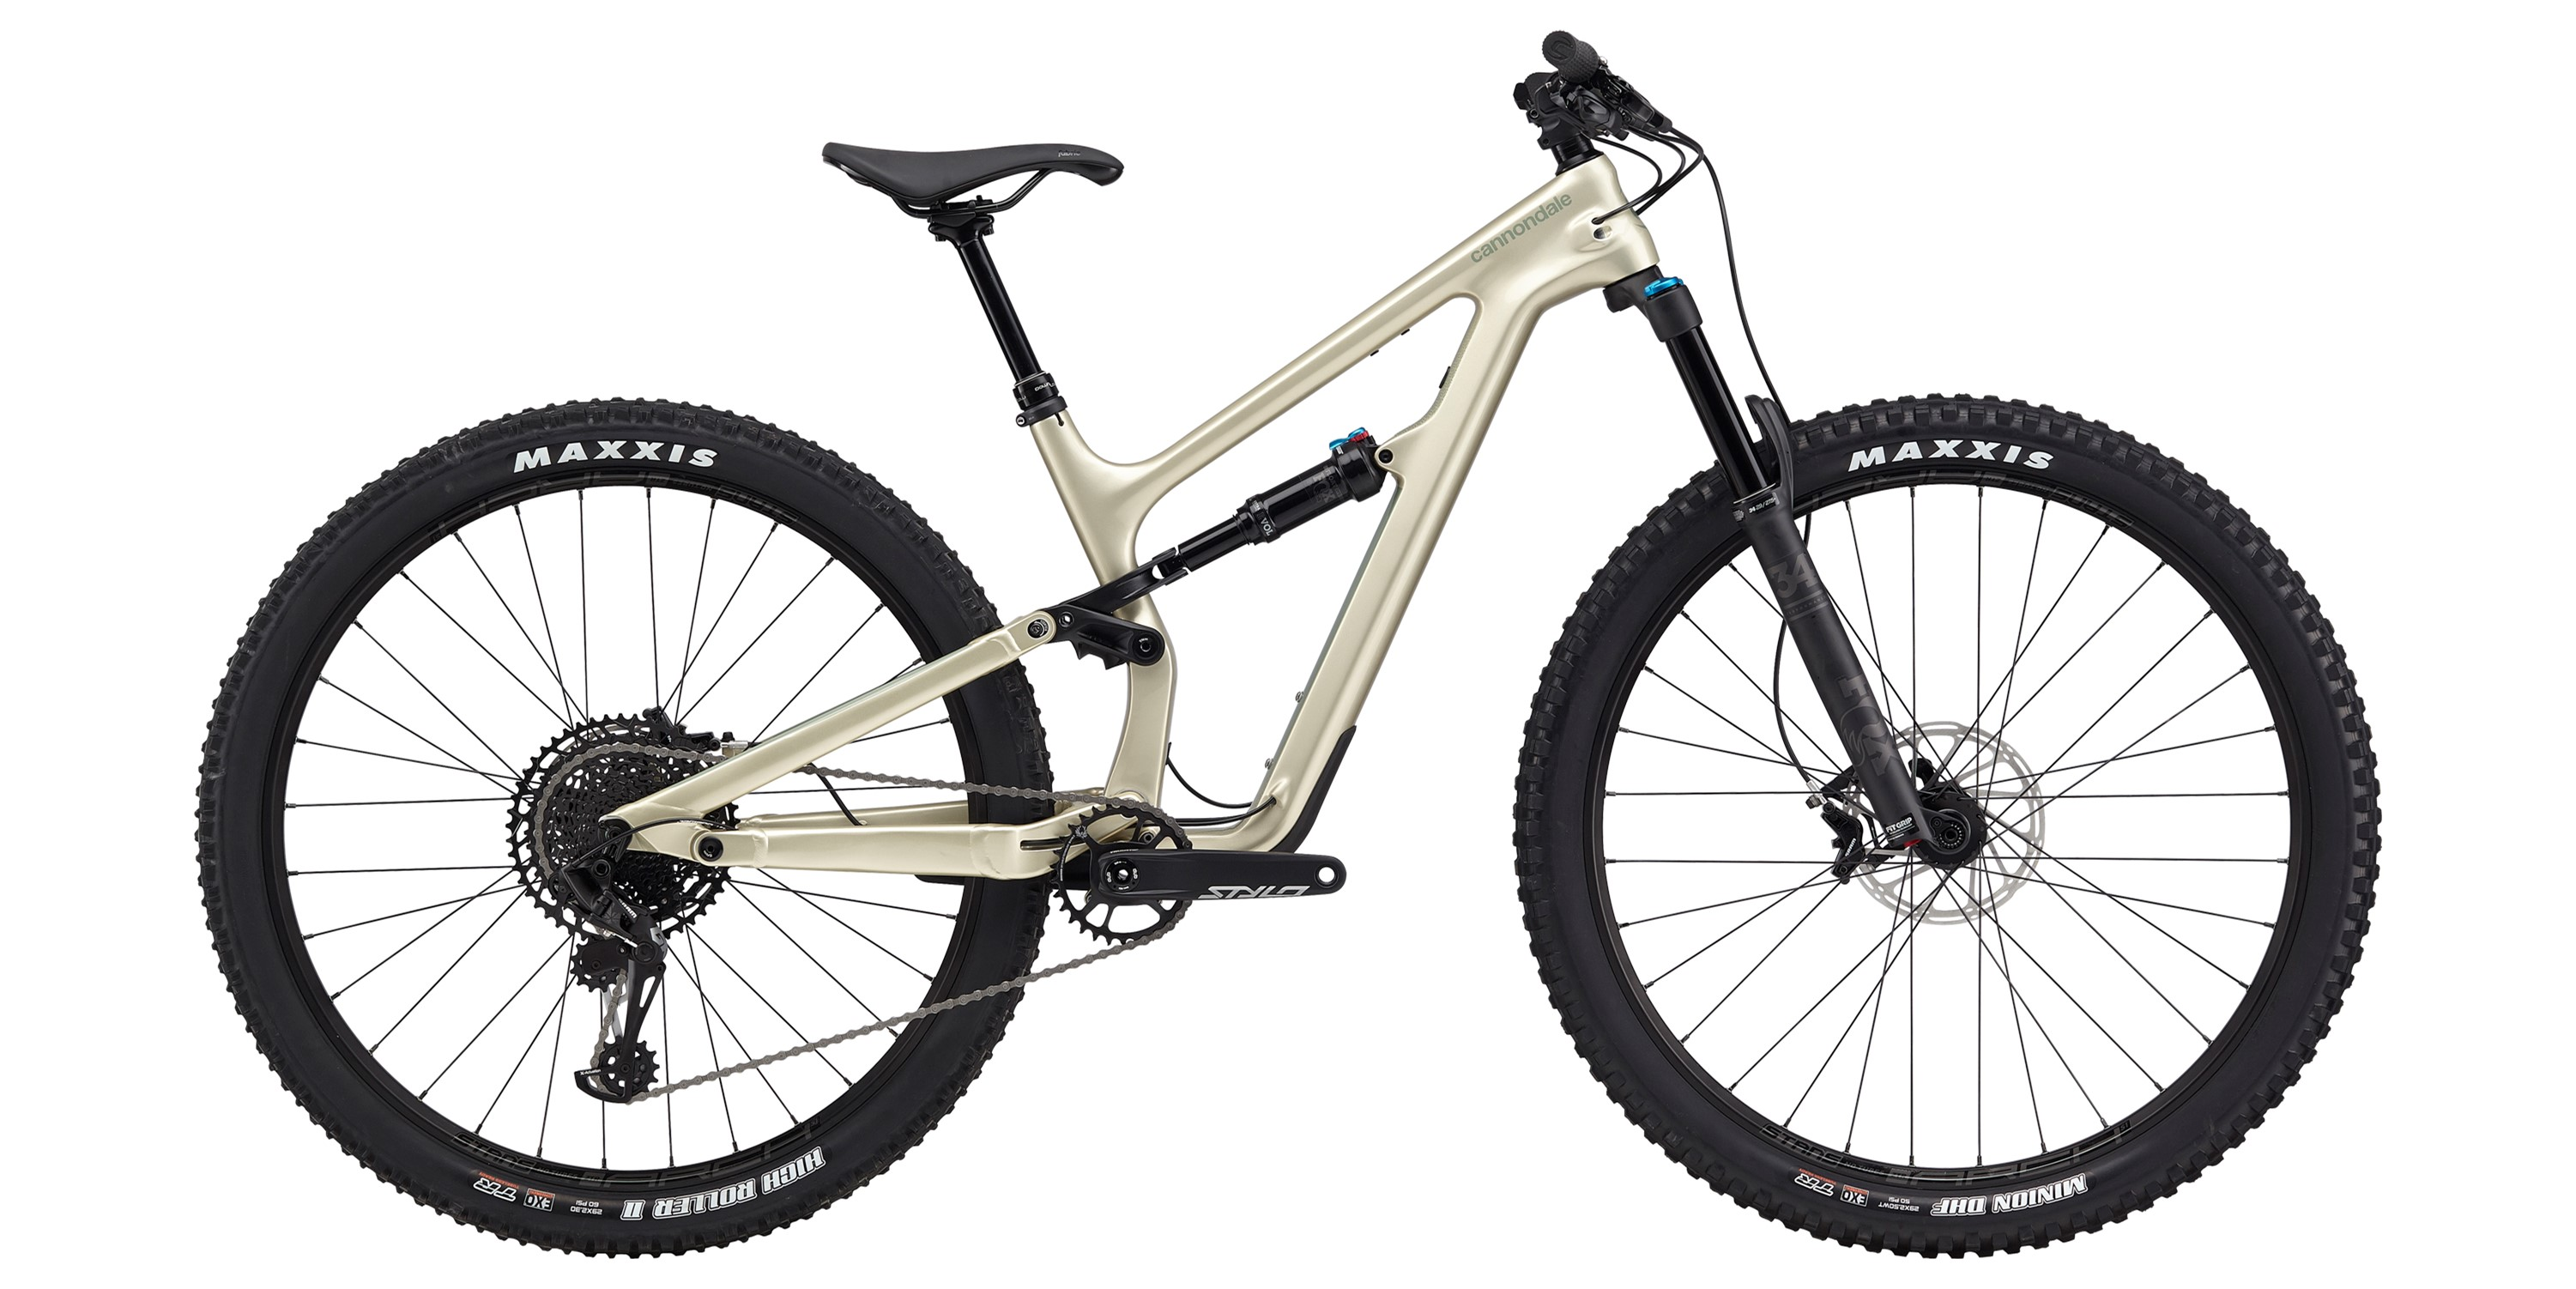 2020 Cannondale Habit Carbon 1 Womens FS Mountain Bike in Brown | MTB